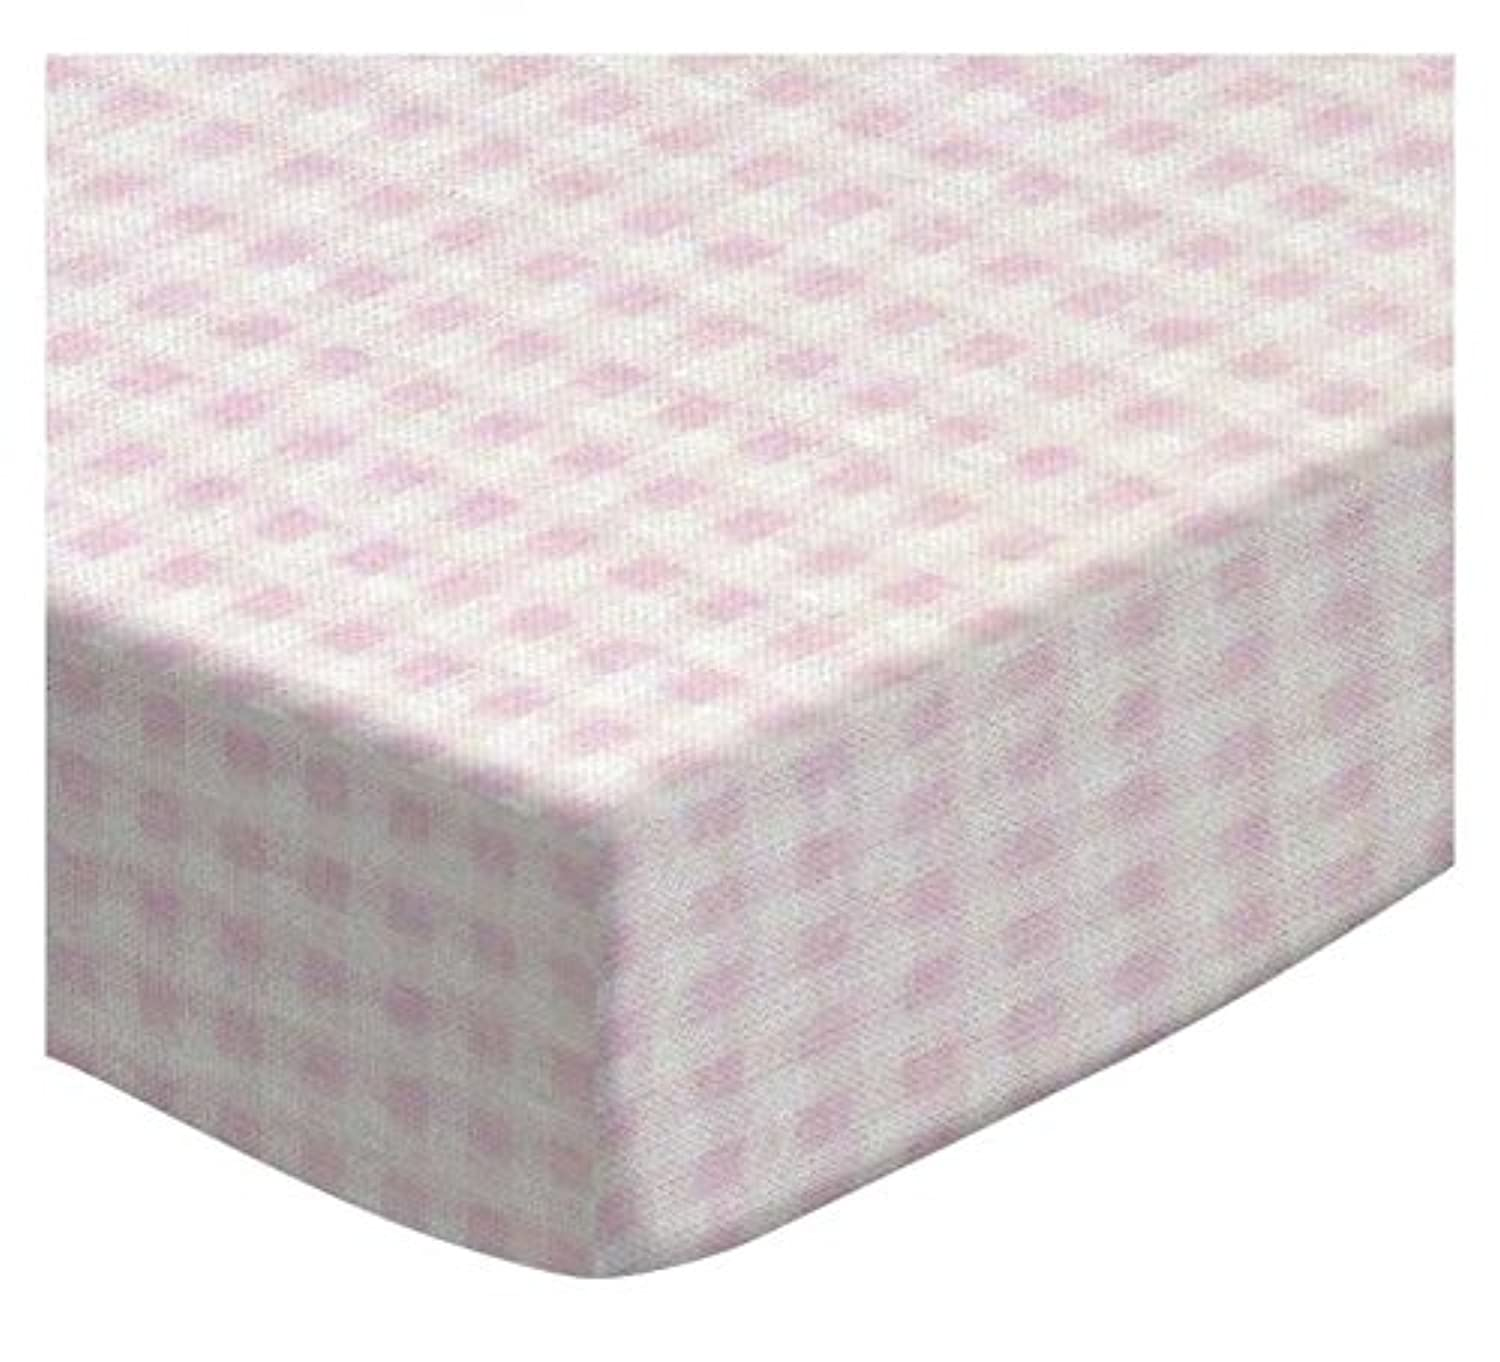 SheetWorld Fitted Square Playard Sheet 37.5 x 37.5 (Fits Joovy) - Pink Gingham Jersey Knit - Made In USA by sheetworld